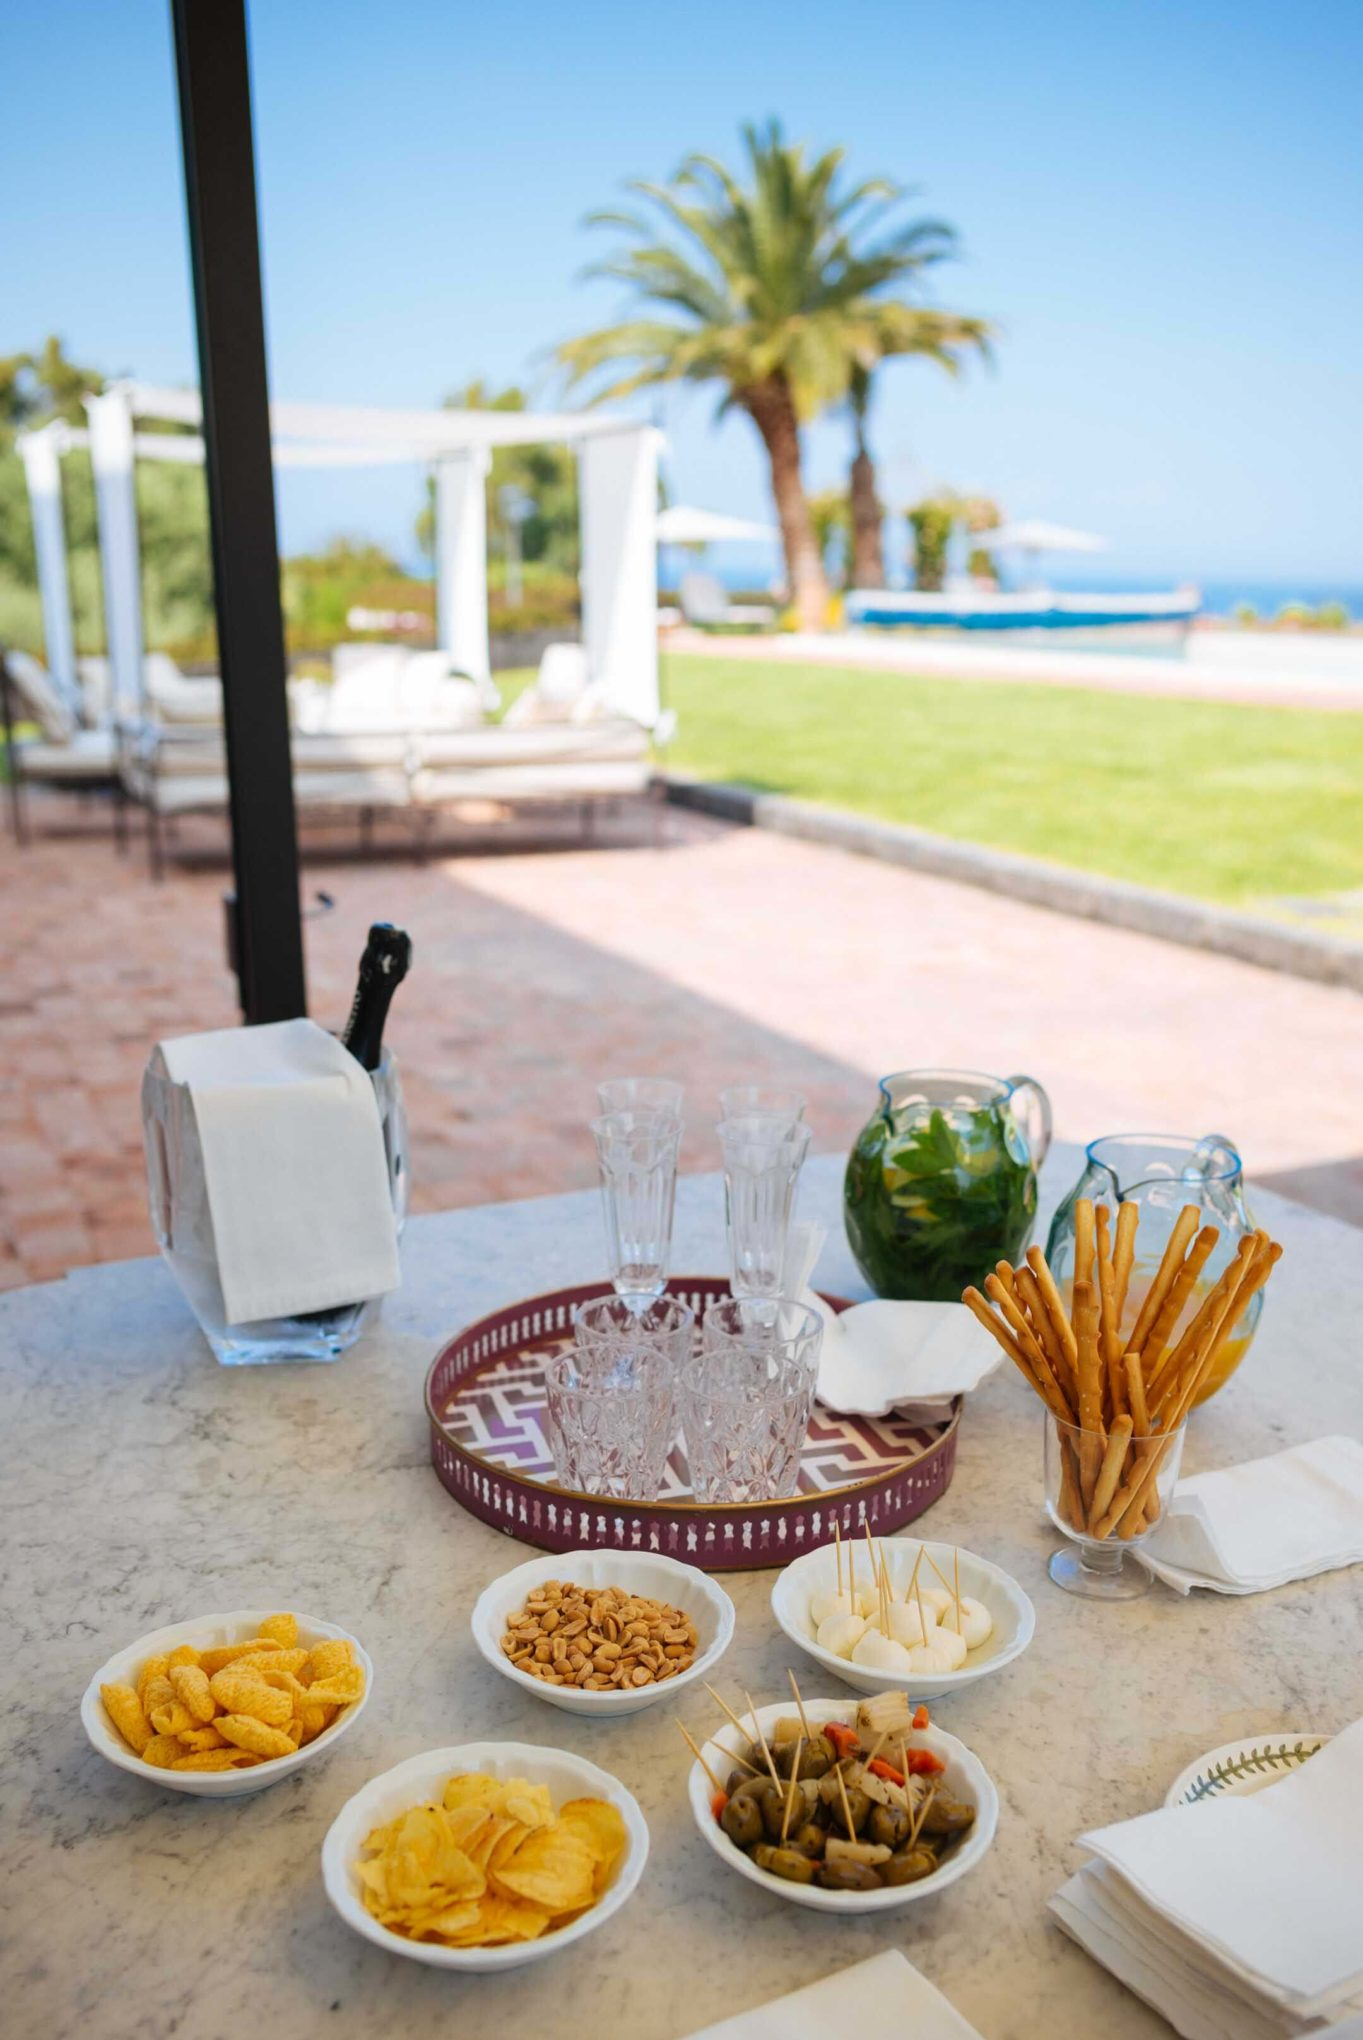 The Taste Edit is welcomed with an apertivo when they arrived at villa Don Venerando in Sicily, Italy.